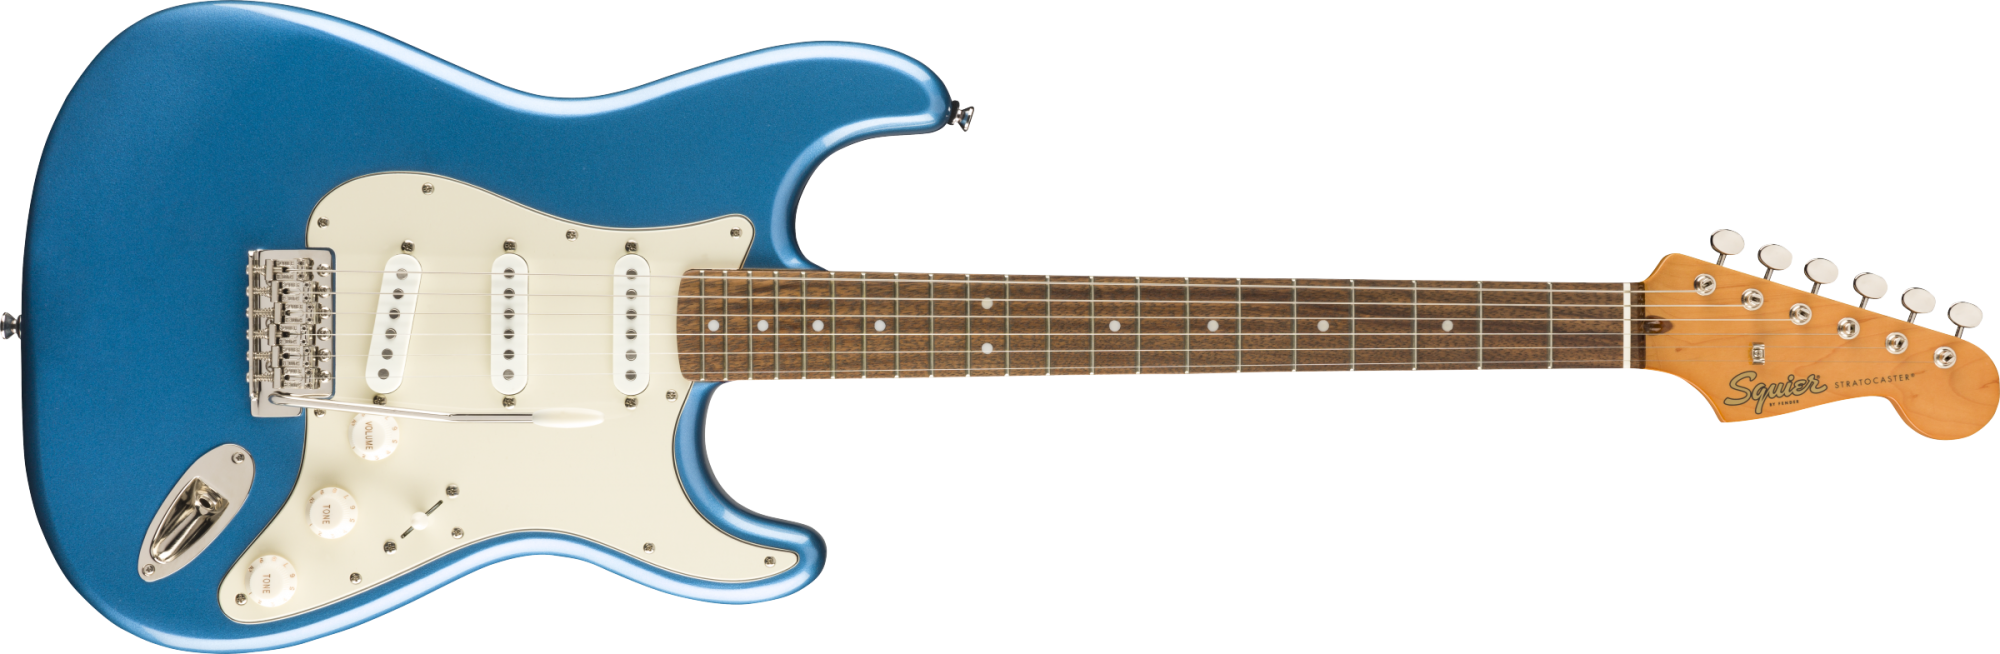 Squier Classic Vibe 60s Stratocaster Laurel Fingerboard Lake Placid Blue